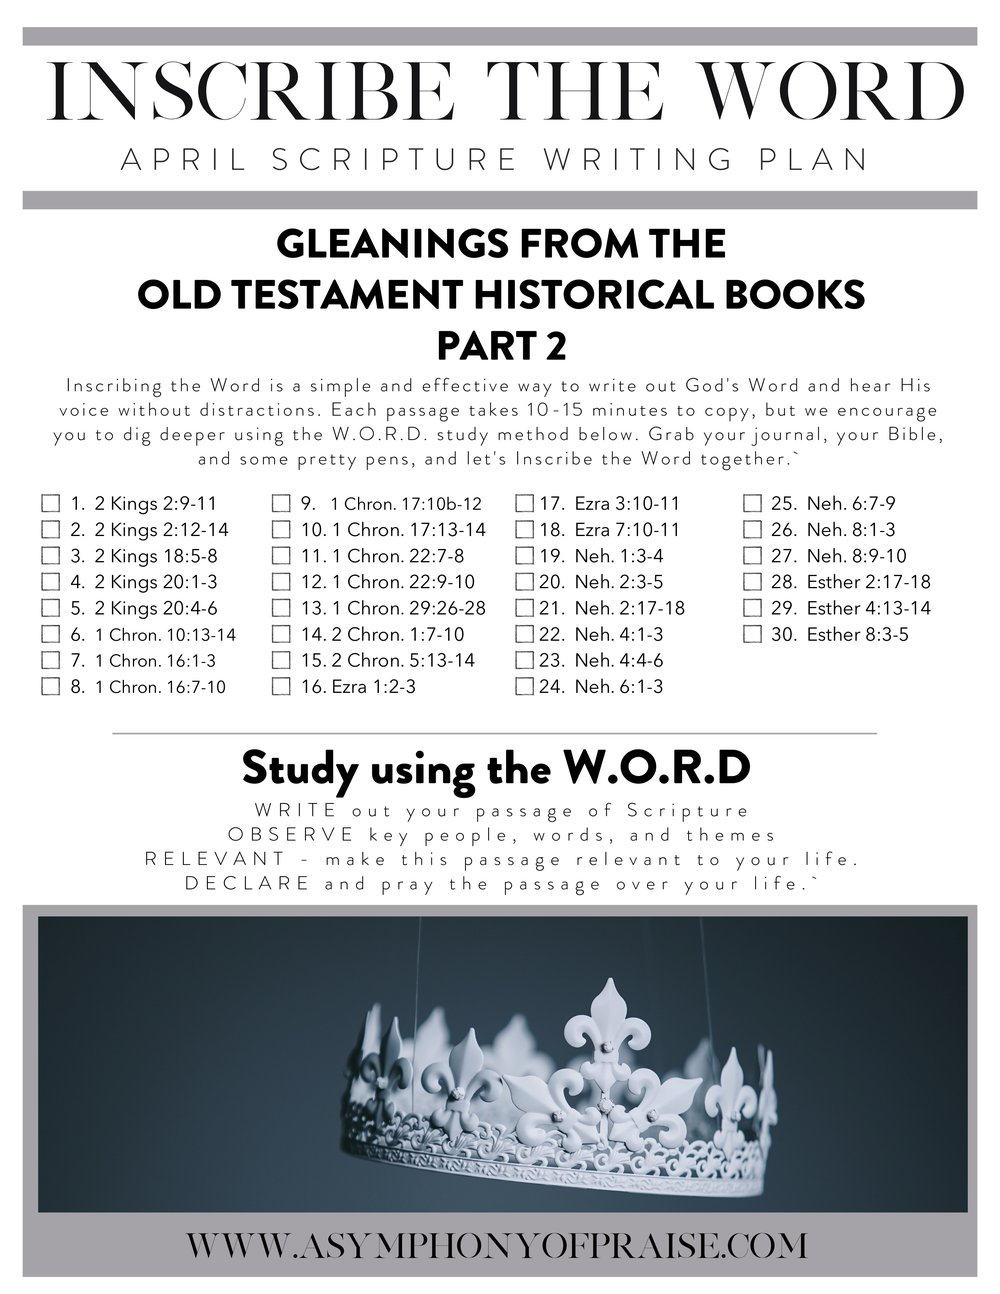 Our April Scripture Writing Plan is here and we are so excited to write through the books of 2 Kings, 1 & 2 Chronicles, Ezra, Nehemiah, and Esther. As we continue to Write through the Bible this year, I encourage you not to pass up these books. Inside you will find a treasure. Join us for this month's Bible Study Plan and get ready to Inscribe the Word as we Inscribe the second part of the Historical Books of the Old Testament.